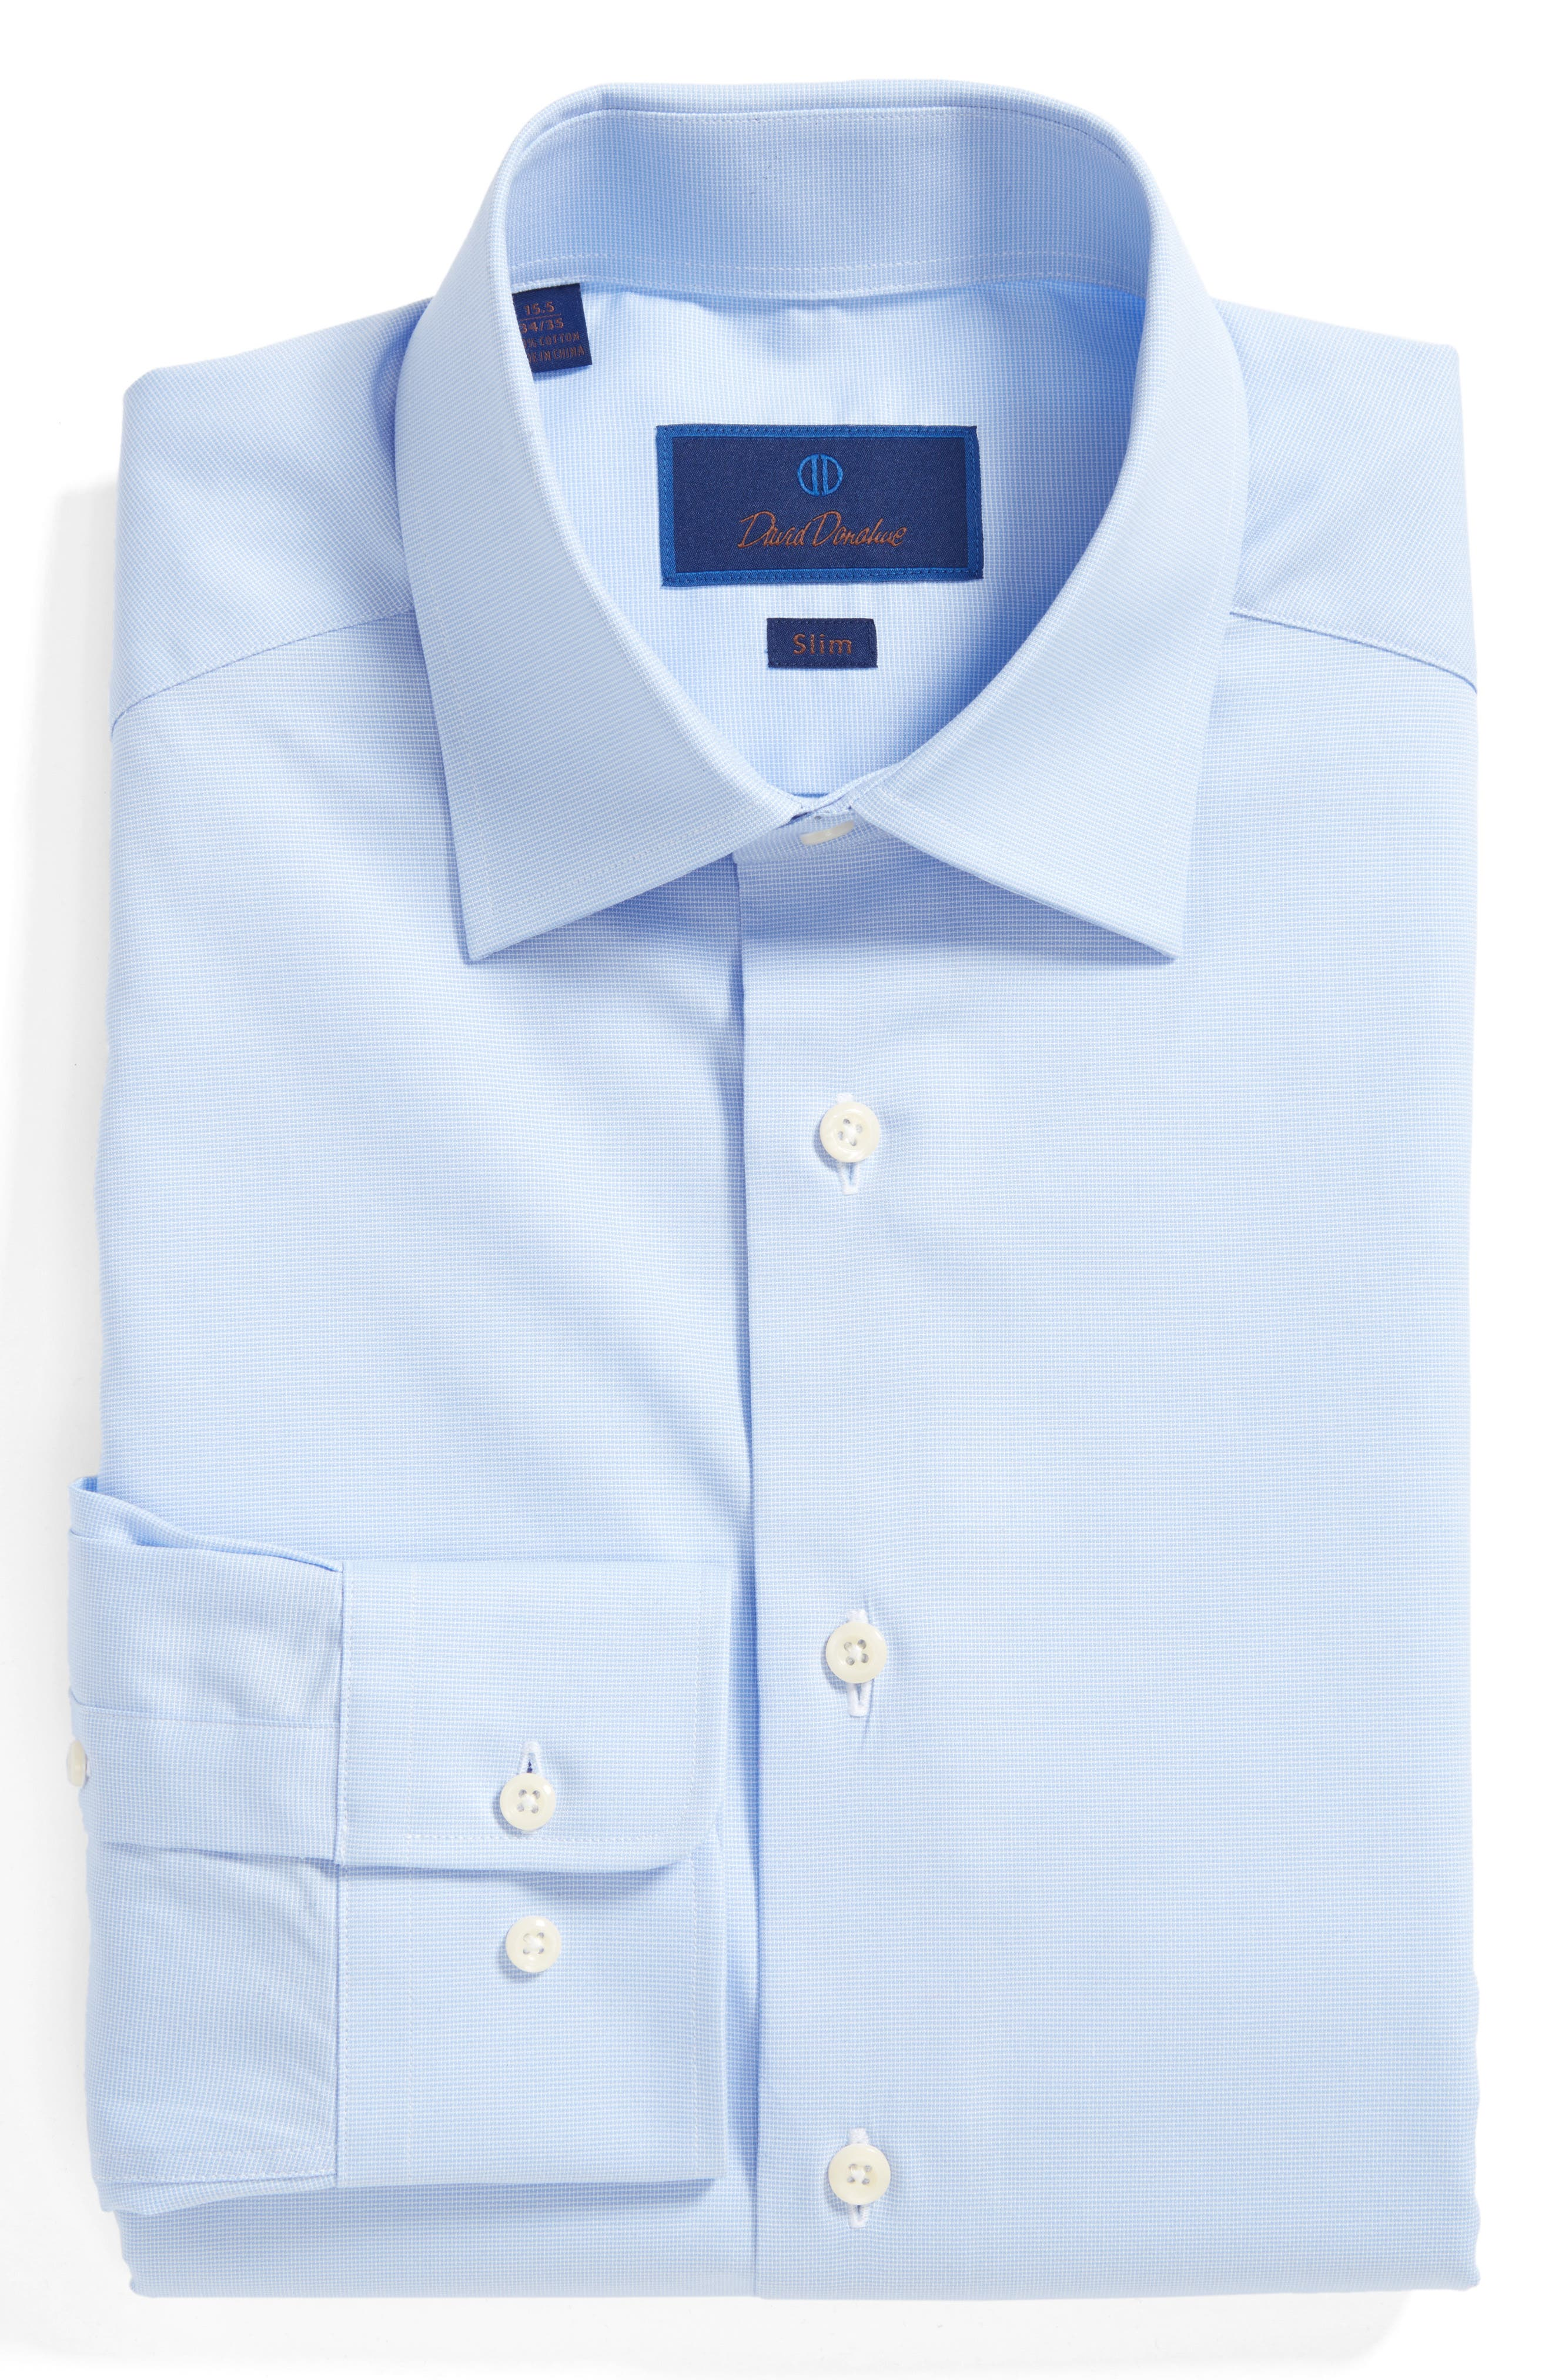 Main Image - David Donahue Slim Fit Solid Dress Shirt